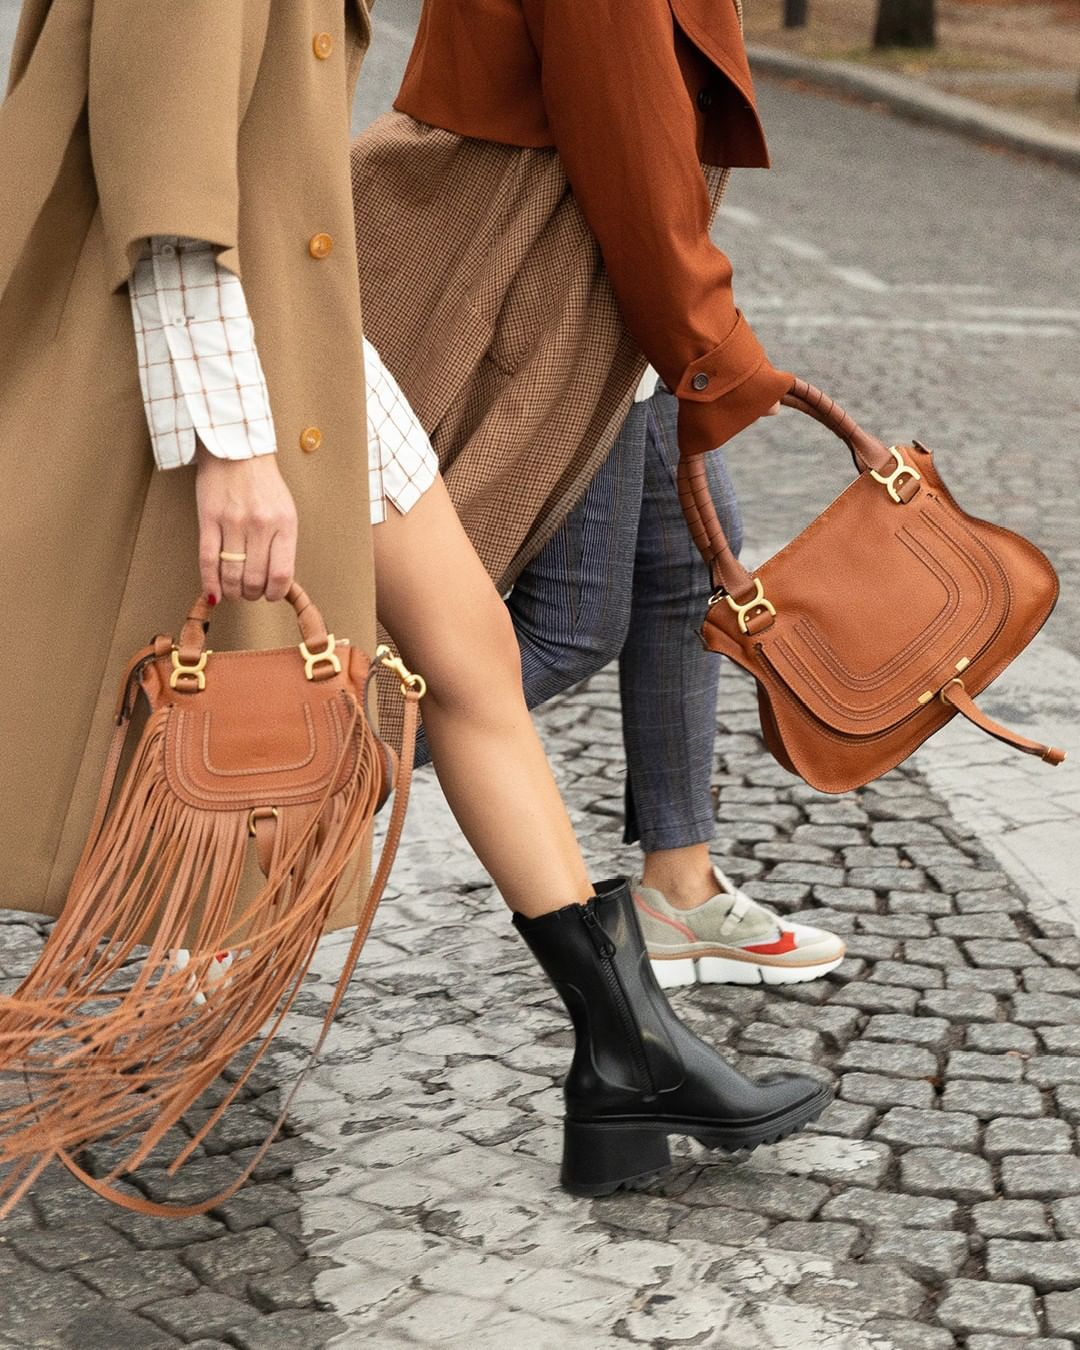 Designer Rain Boots To Keep You Chic And Dry